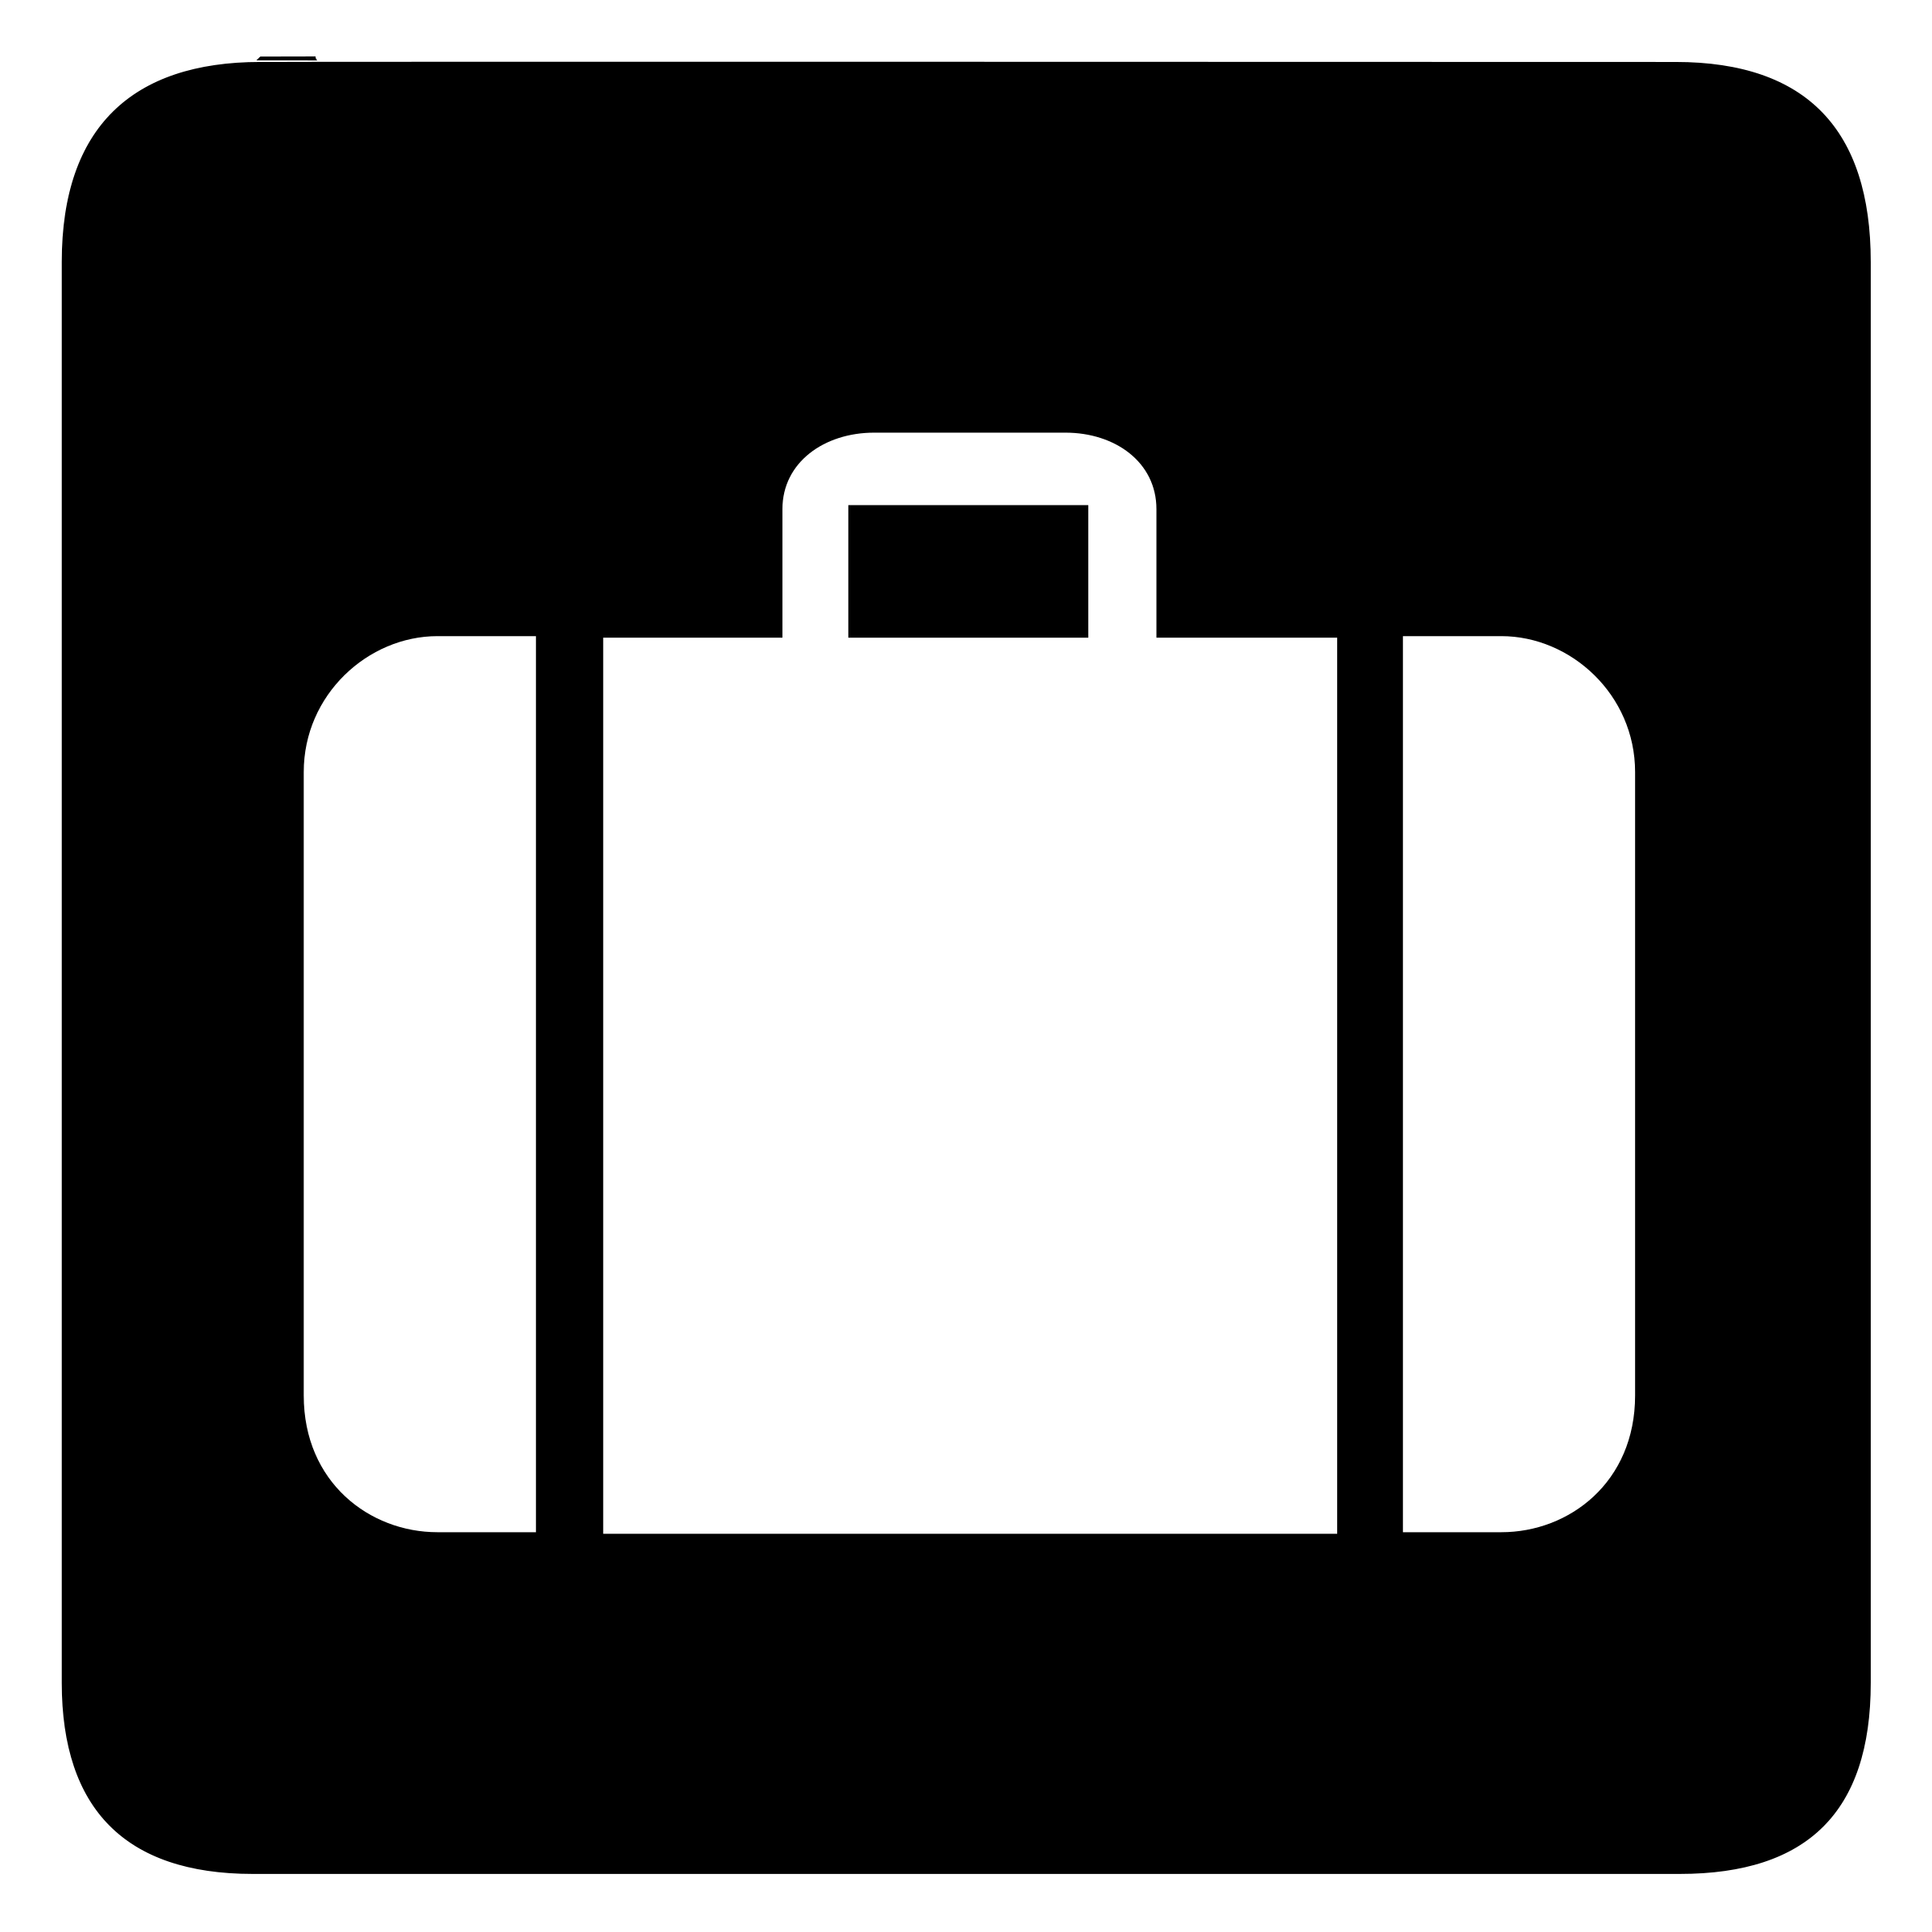 Airport clipart leaving. Baggage check